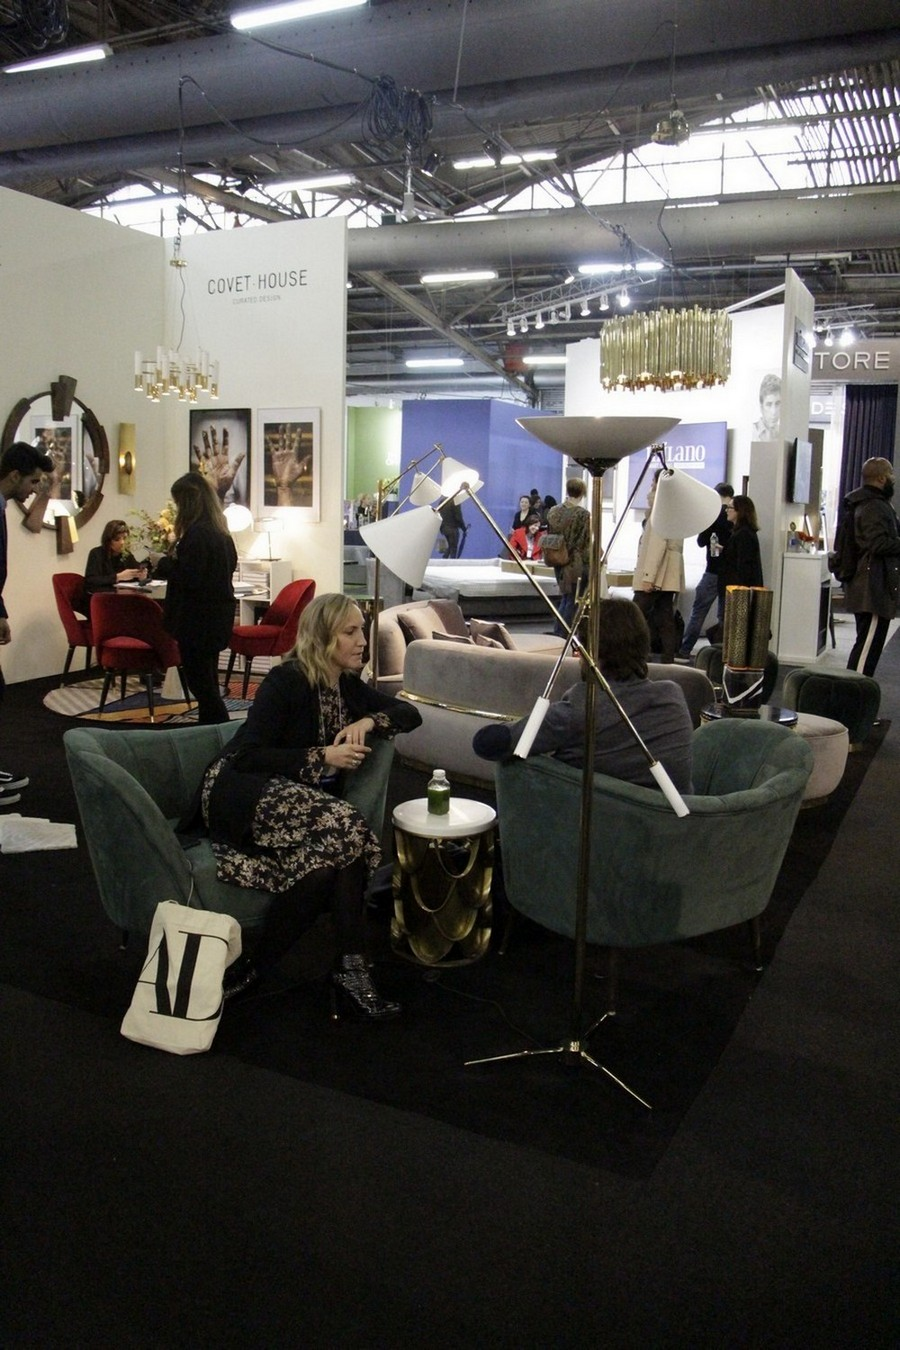 AD Design Show 2019 The Biggest Highlights From Covet House capa ad design show 2019 AD Design Show 2019: The Biggest  Highlights From Covet House AD Design Show 2019 The Biggest Highlights From Covet House 2